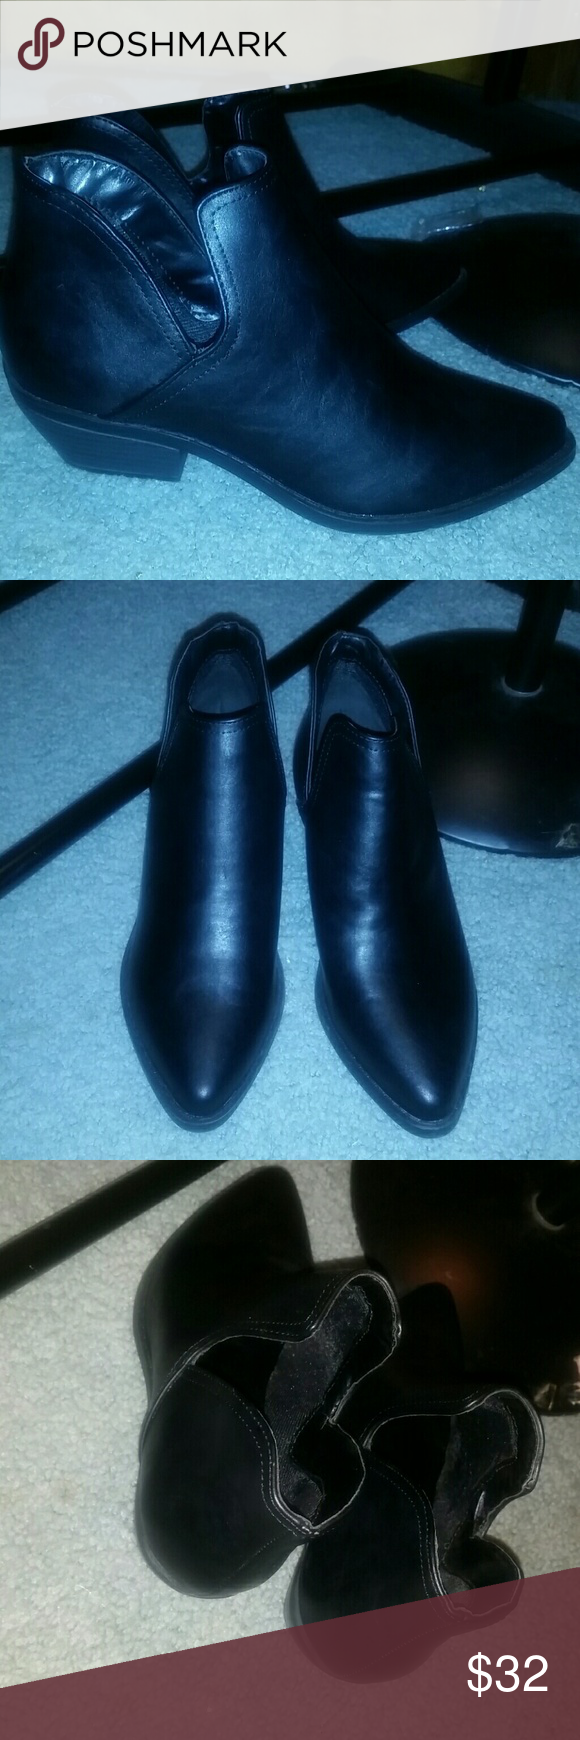 Black leather ankle booties 7.5 Soda brand. Super comfy and chic. So upscale on! Shoes Ankle Boots & Booties